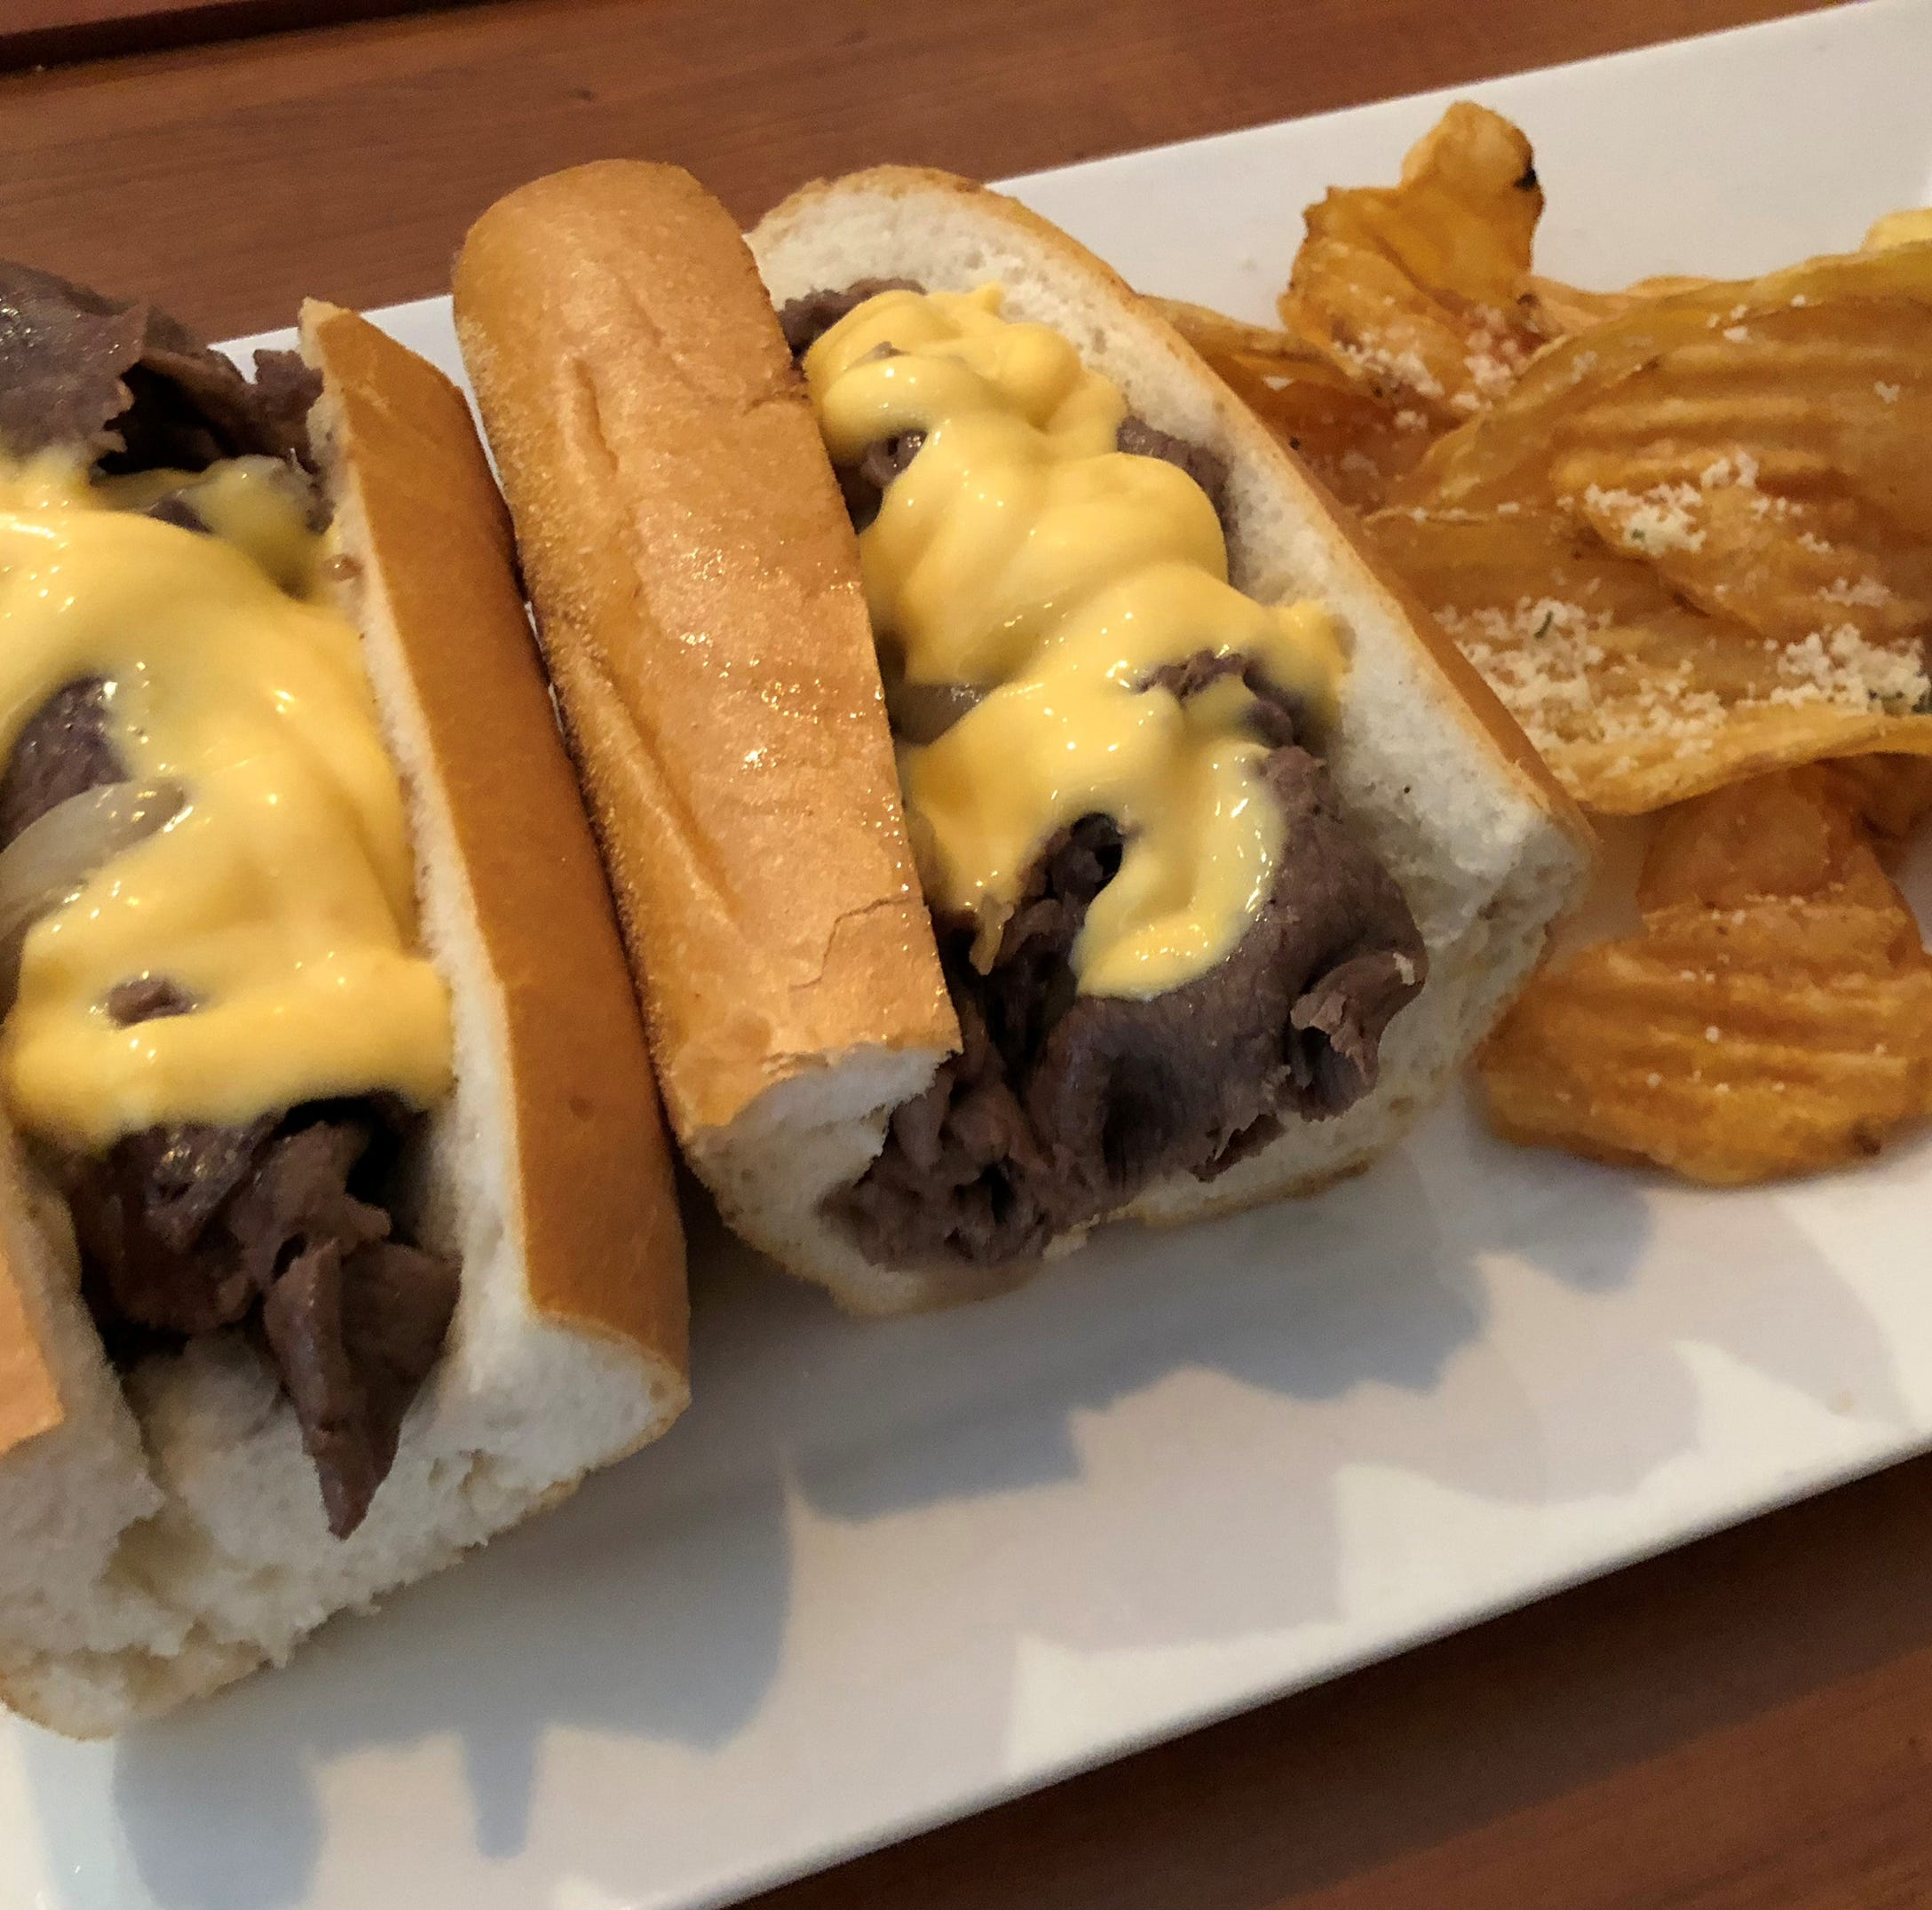 Dining review: Philadelphia freedom, cheesesteaks are here on Marco